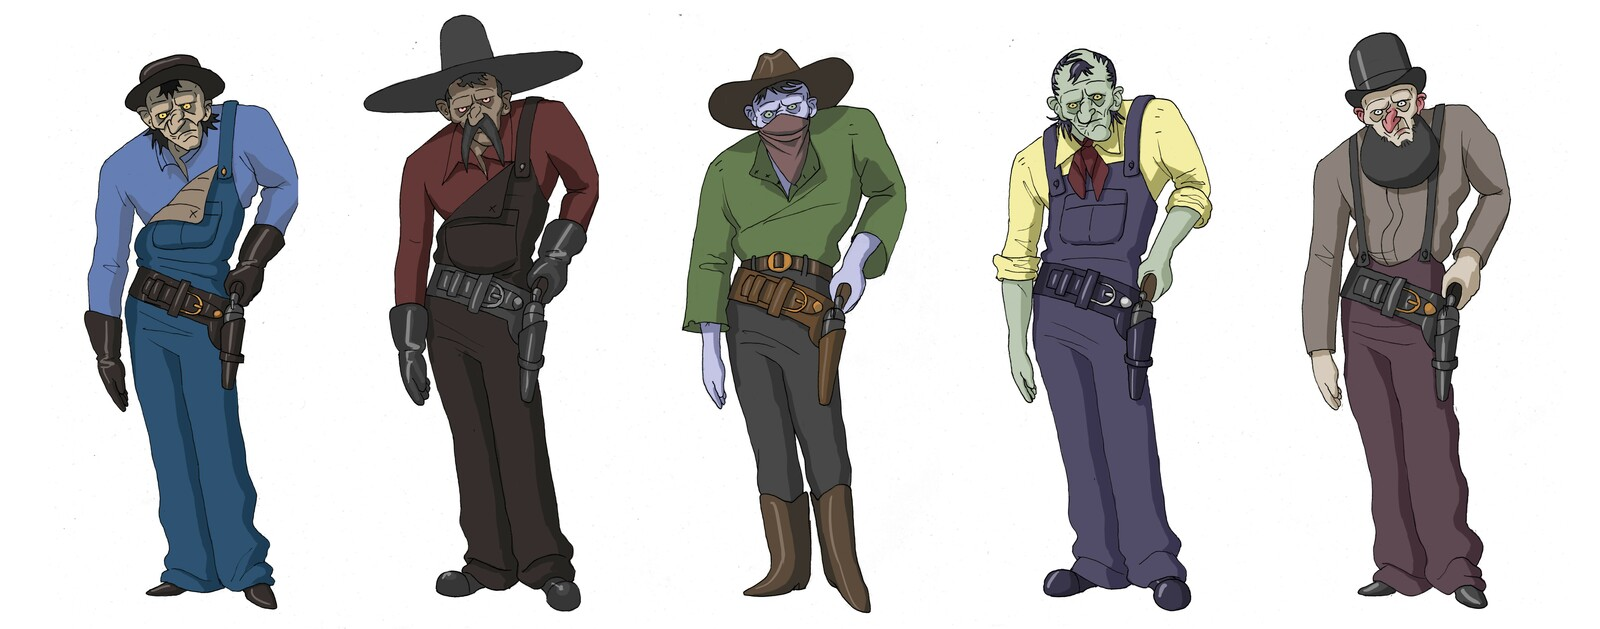 Character design variations.